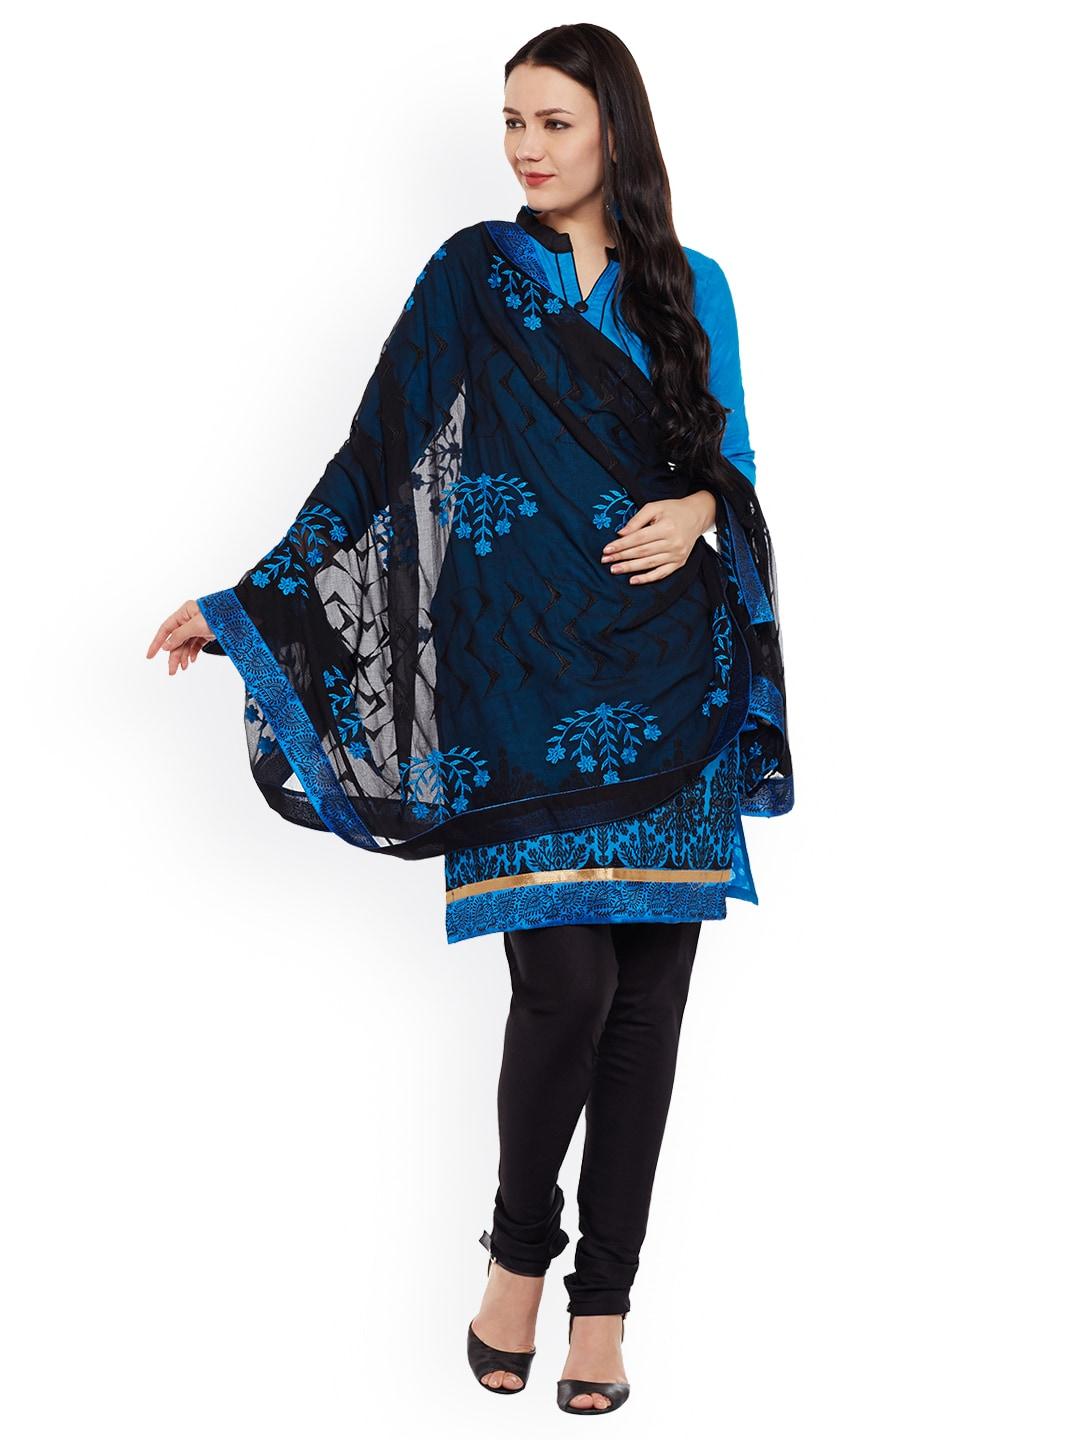 AgrohA Blue & Black Cotton Blend Unstitched Dress Material image